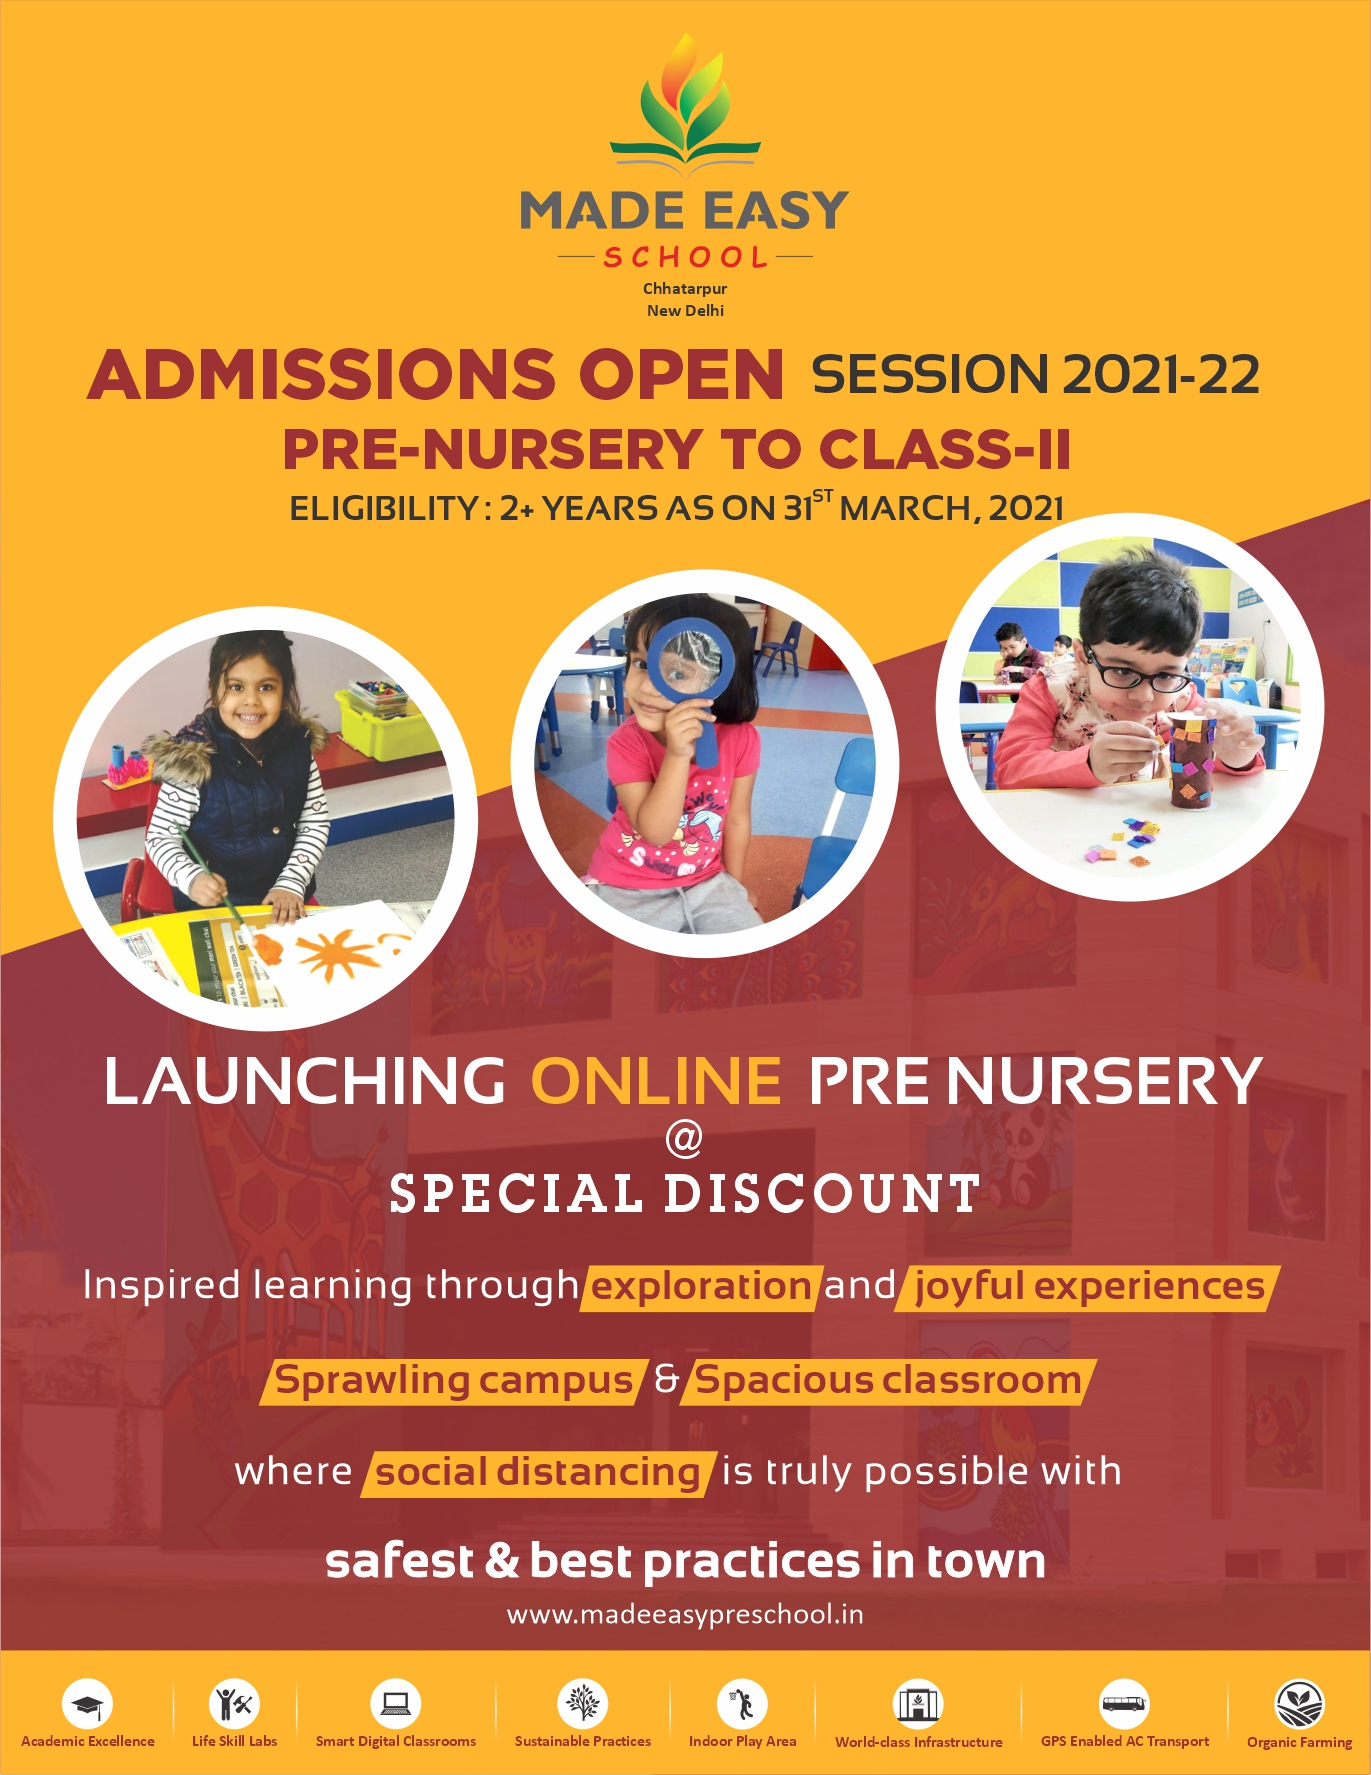 Admissions Open Session-2021-22 for Pre-Nursery to Class-II